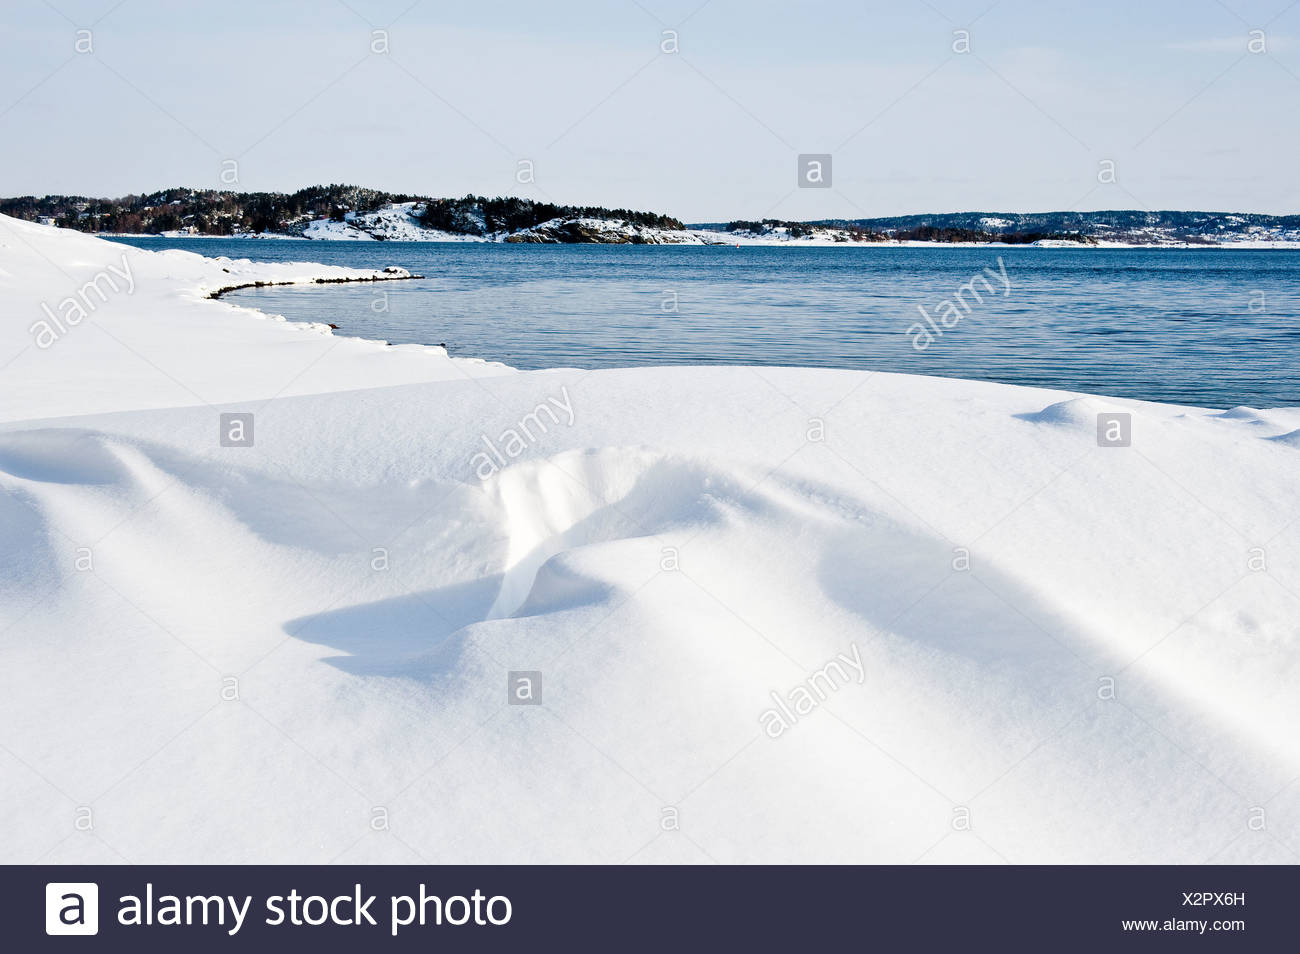 Winter landscape by the water against clear sky - Stock Image